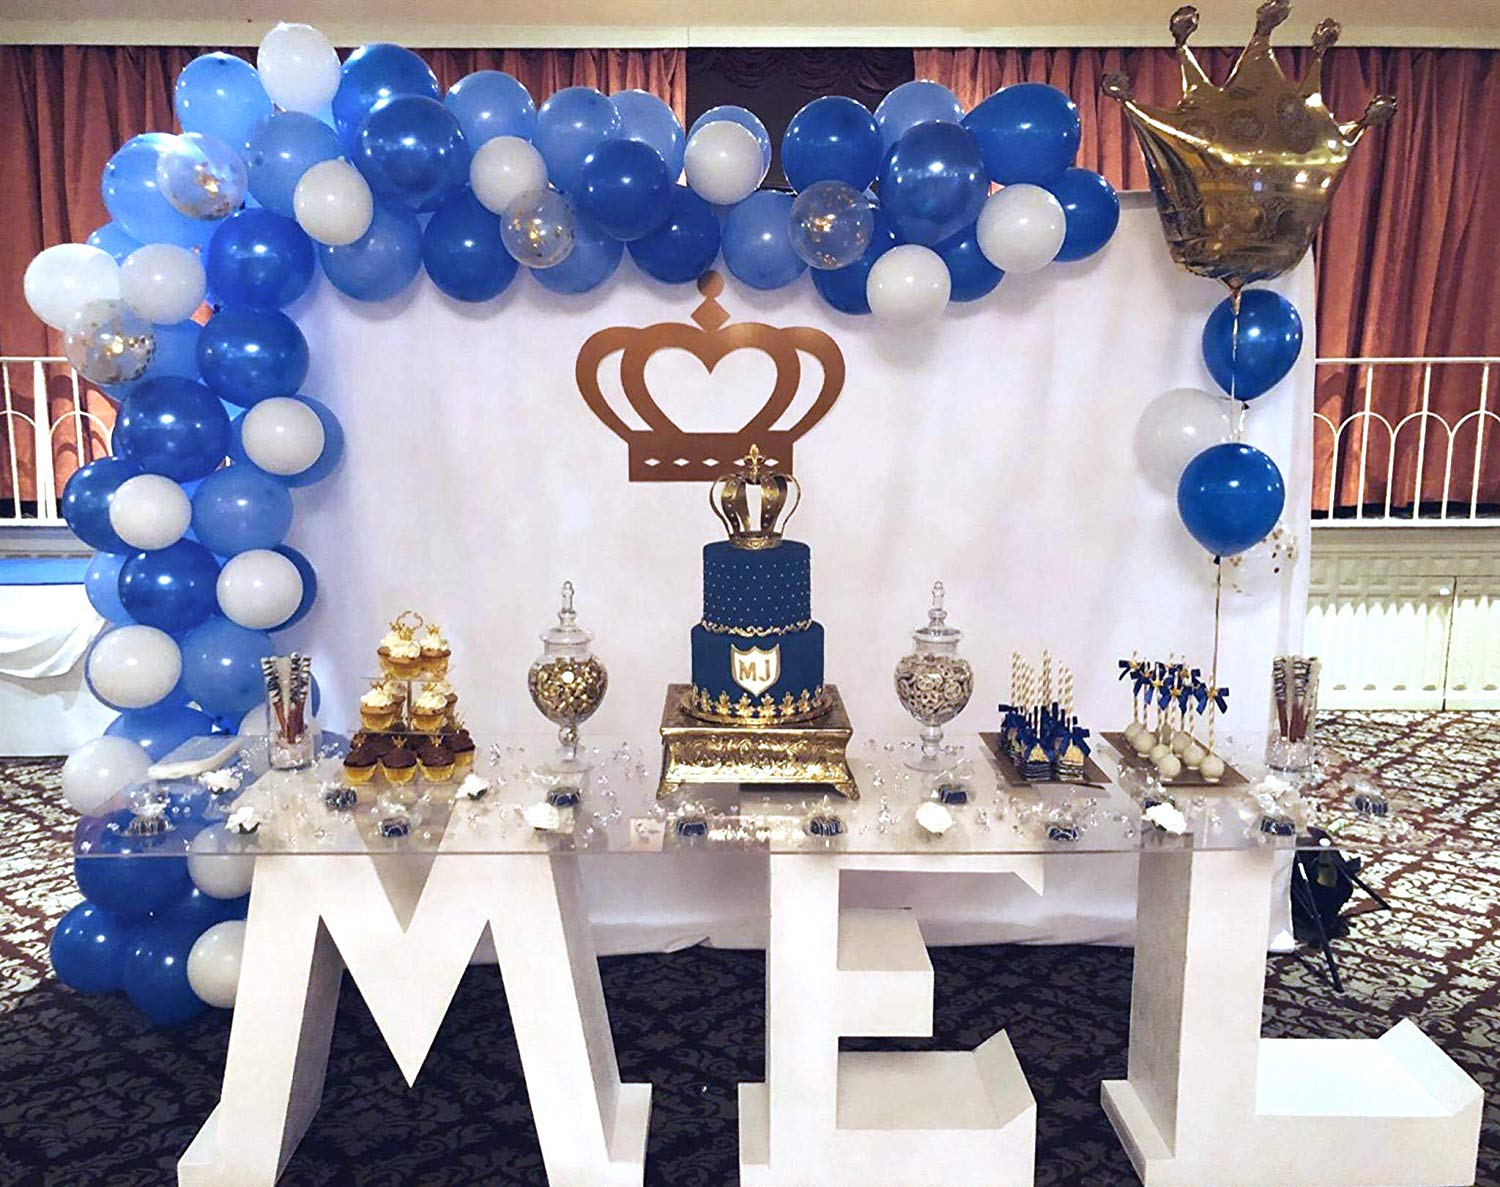 METABLE 300 pcs Royal Blue Light Gold Confetti Balloons White and Gold, Baby Shower Decorations